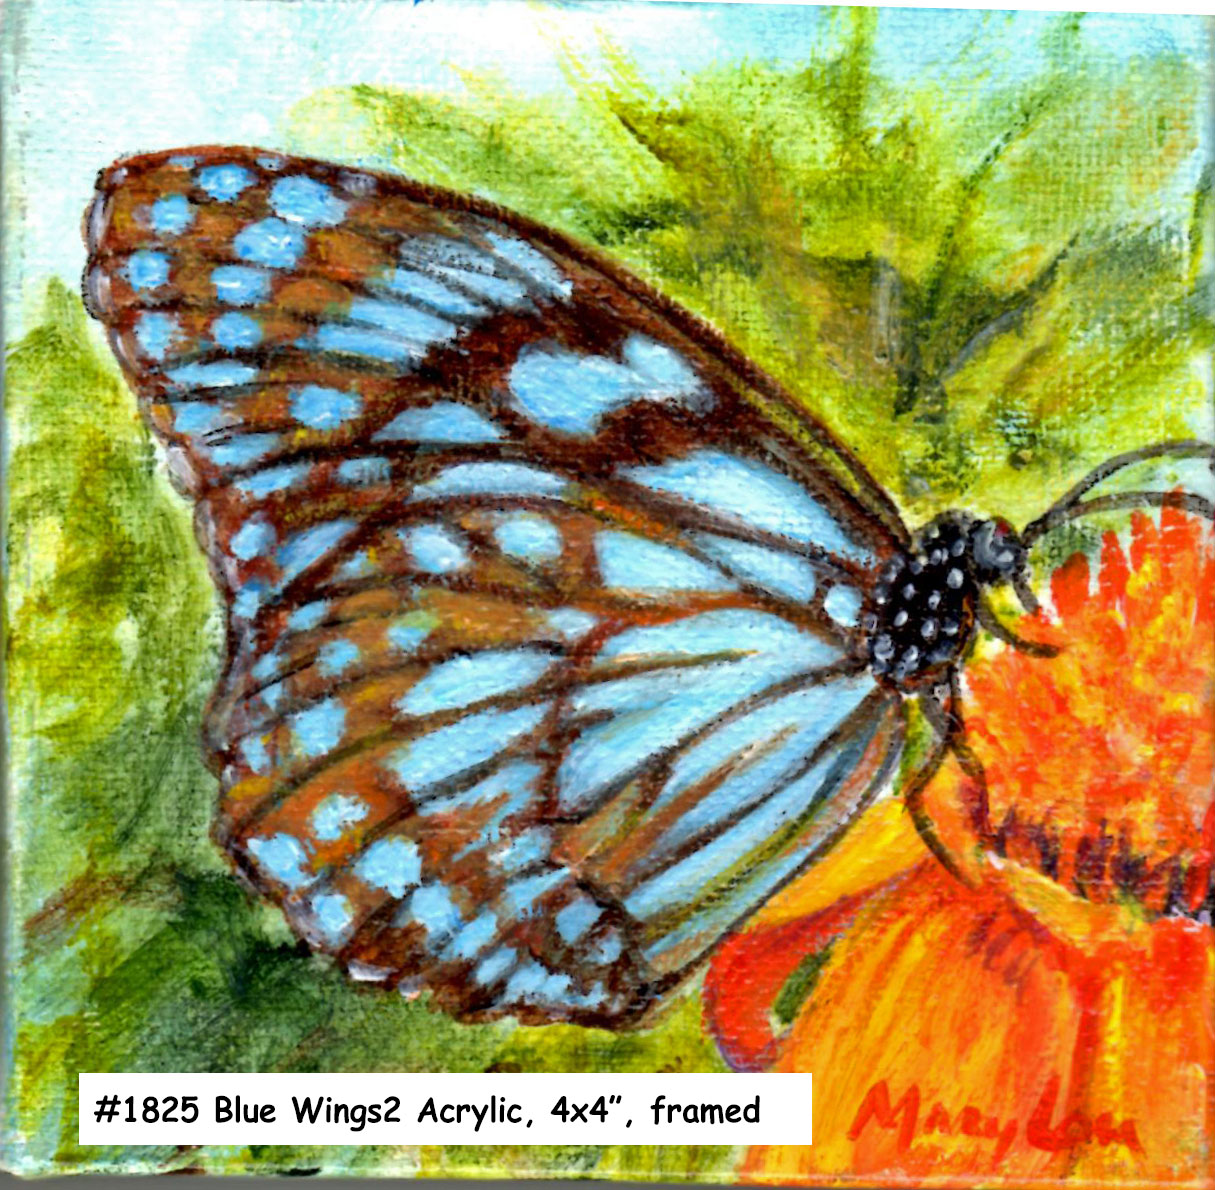 18-25-Blue Wings2-4x4-acrylic